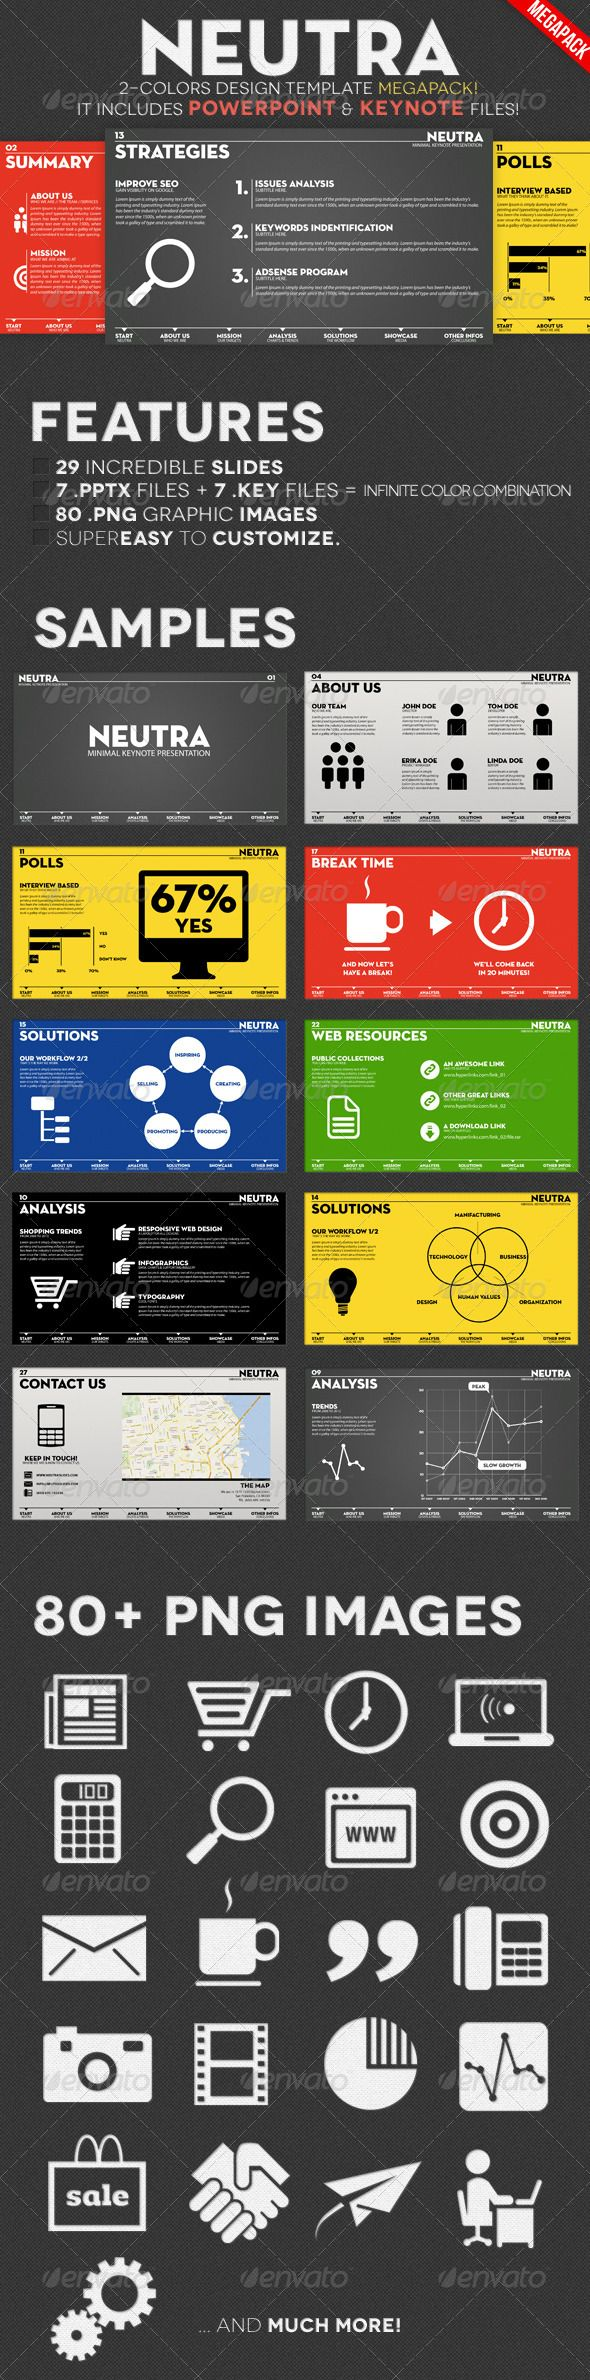 Neutra - Two Colors PowerPoint & Keynote Pack  #GraphicRiver         Neutra is a Keynote Presentation Template with custom graphic elements and animation.  	 29 incredible slides with 80+ custom infographics images. Infinite color combinations. This presentation is highly customizable with easiness, both in Microsoft PowerPoint (minimum Office 2007) and in Keynote (minimum iWork '09). The project setting is in Full HD (1920×1080). Ideal for business, corporate, portfolio and creativity.  	…